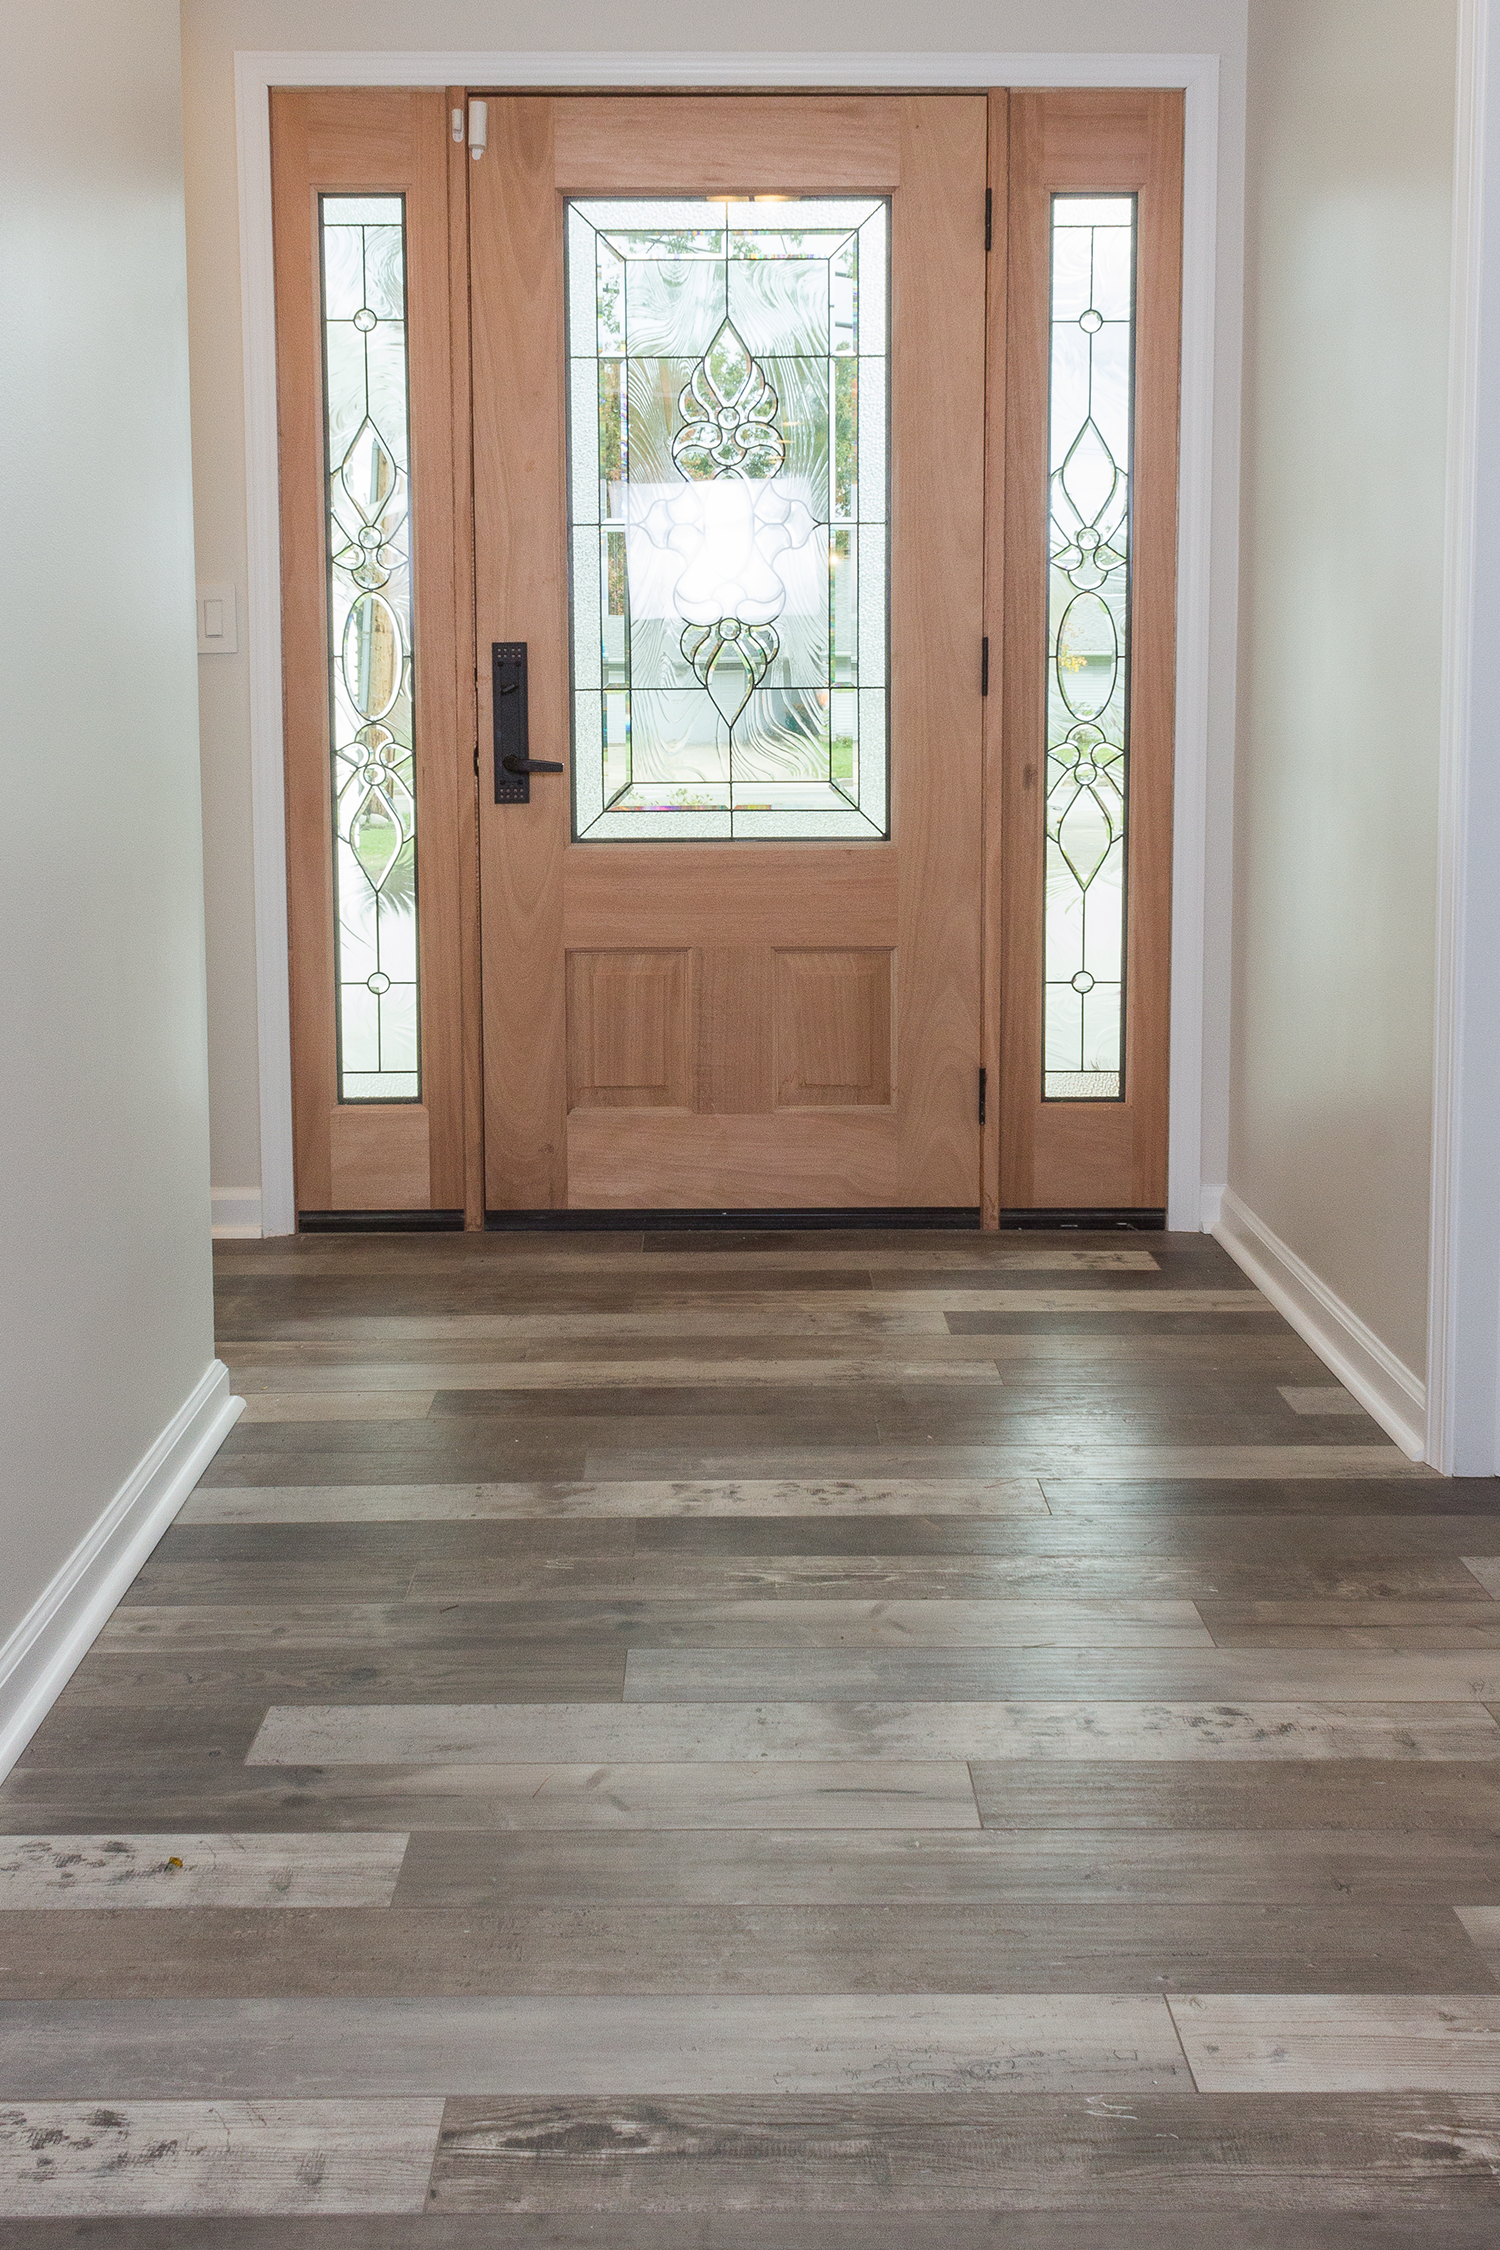 Dark Laminate Flooring With White Trim Designs Wright Armstrong Architectural Remnants Seaside Pine Dockside L6656 76